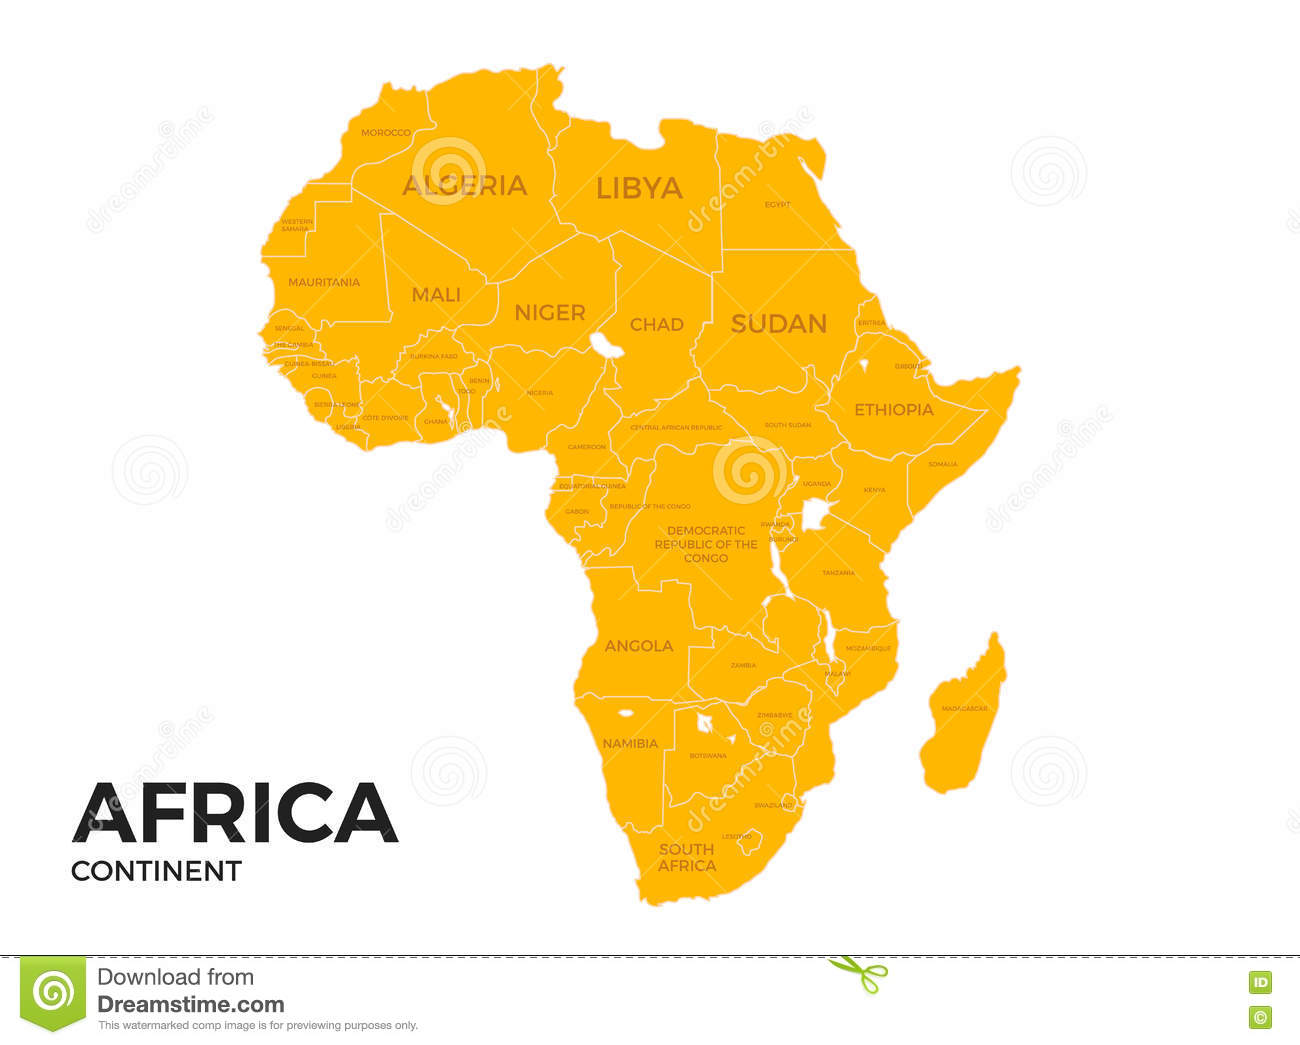 Africa Continent Location Map Stock Vector Illustration Of Place